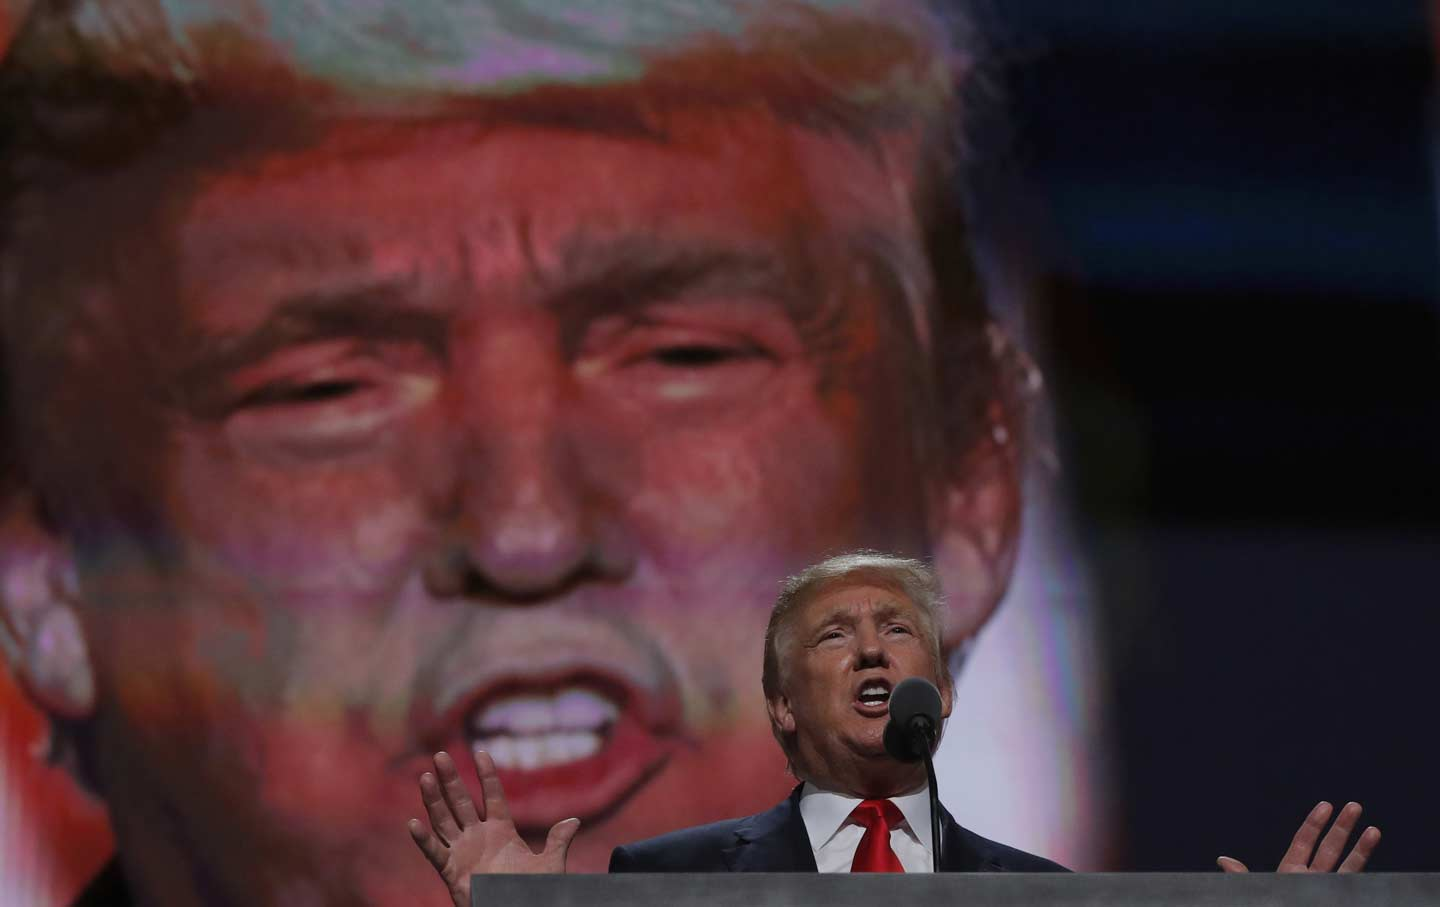 Donald Trump's Angry, Dark Speech Caps Off a Disastrous RNC